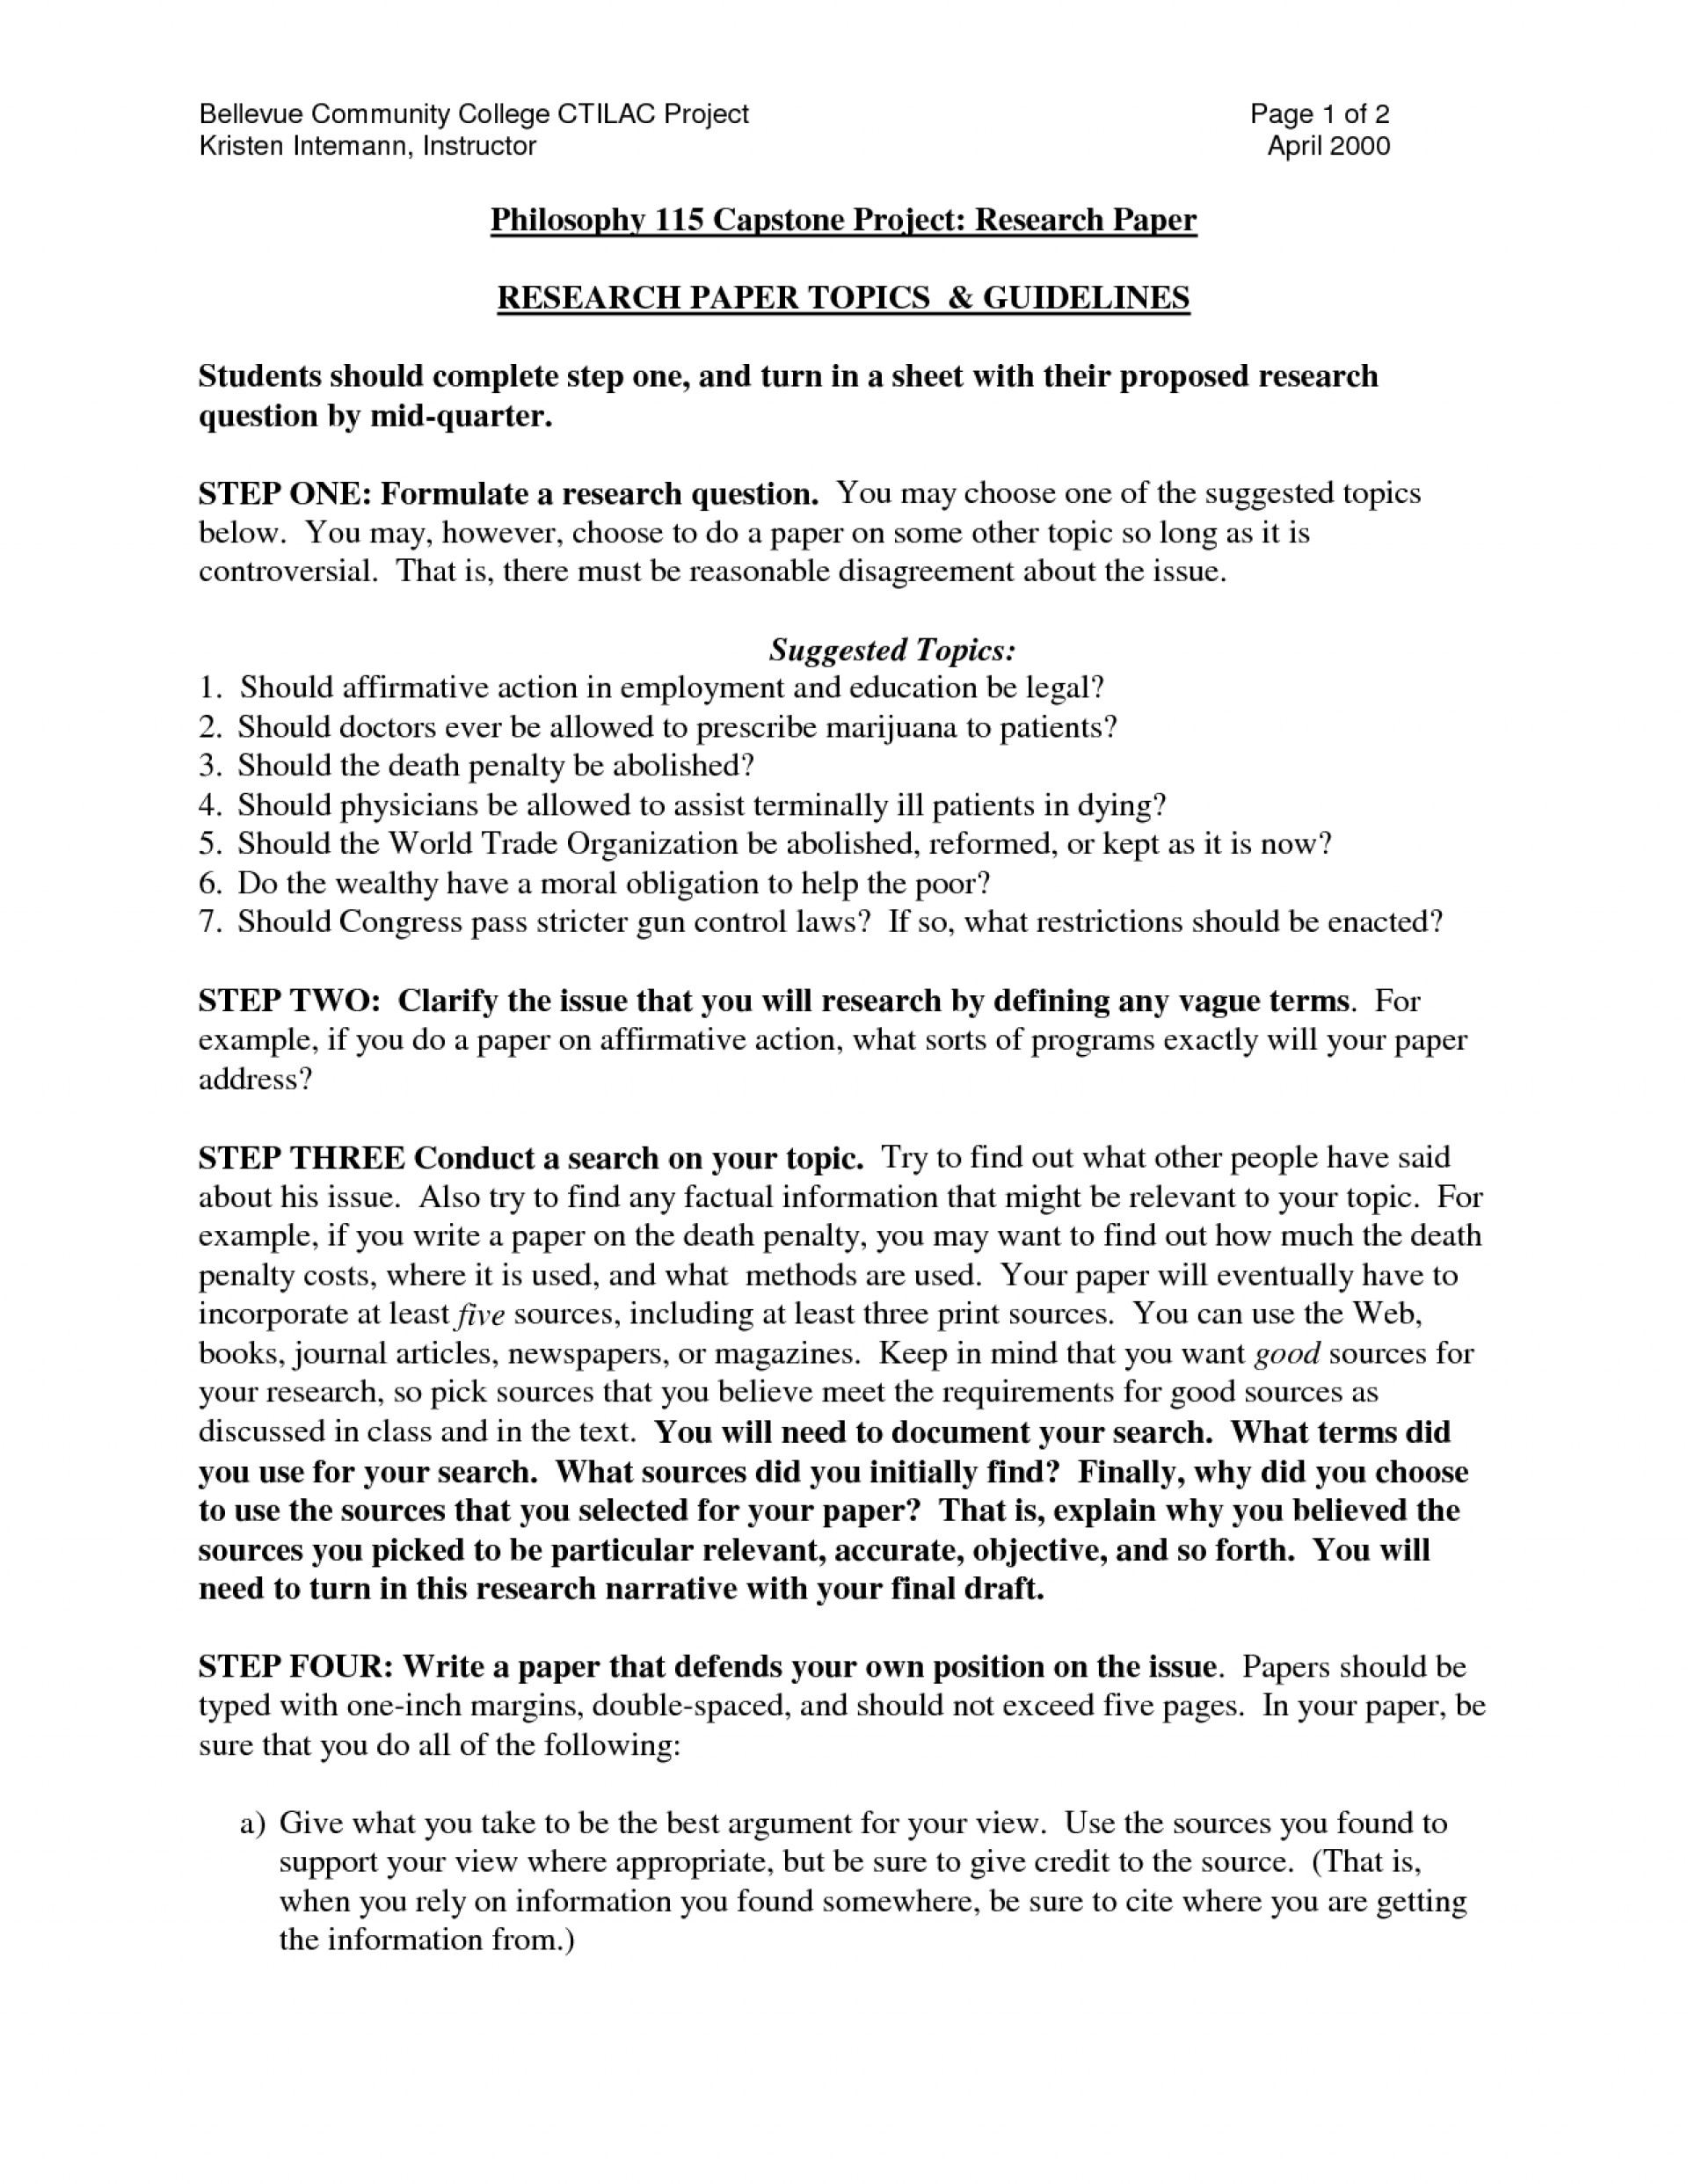 007 Best Solutions Of Interesting Research Paper Topics